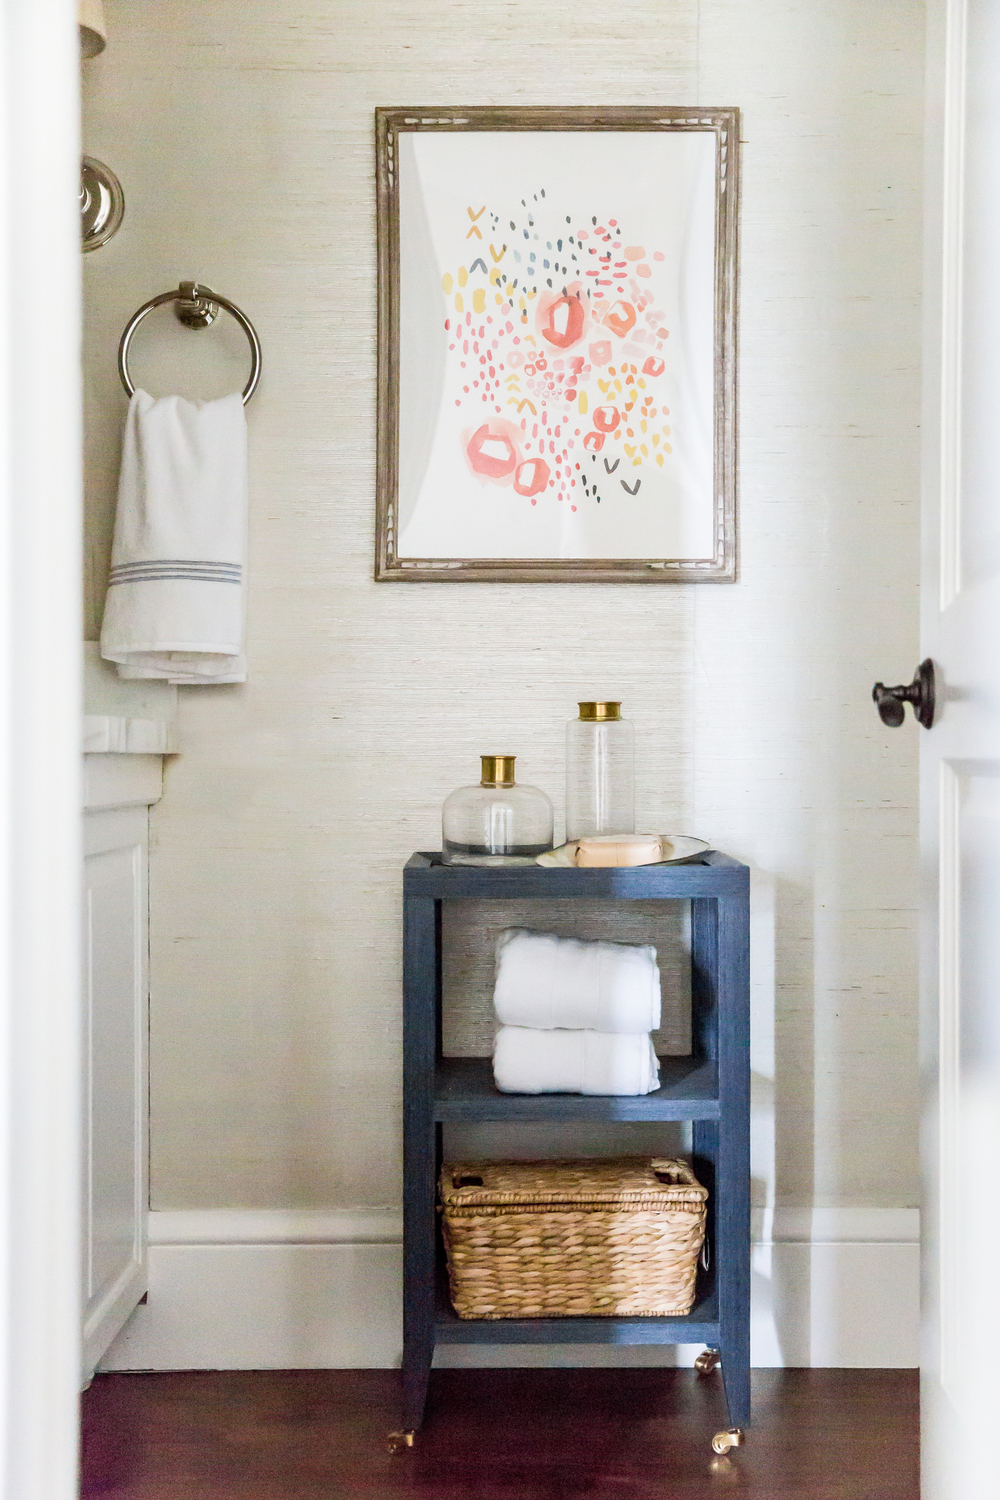 Small blue bathroom shelves beside toilet